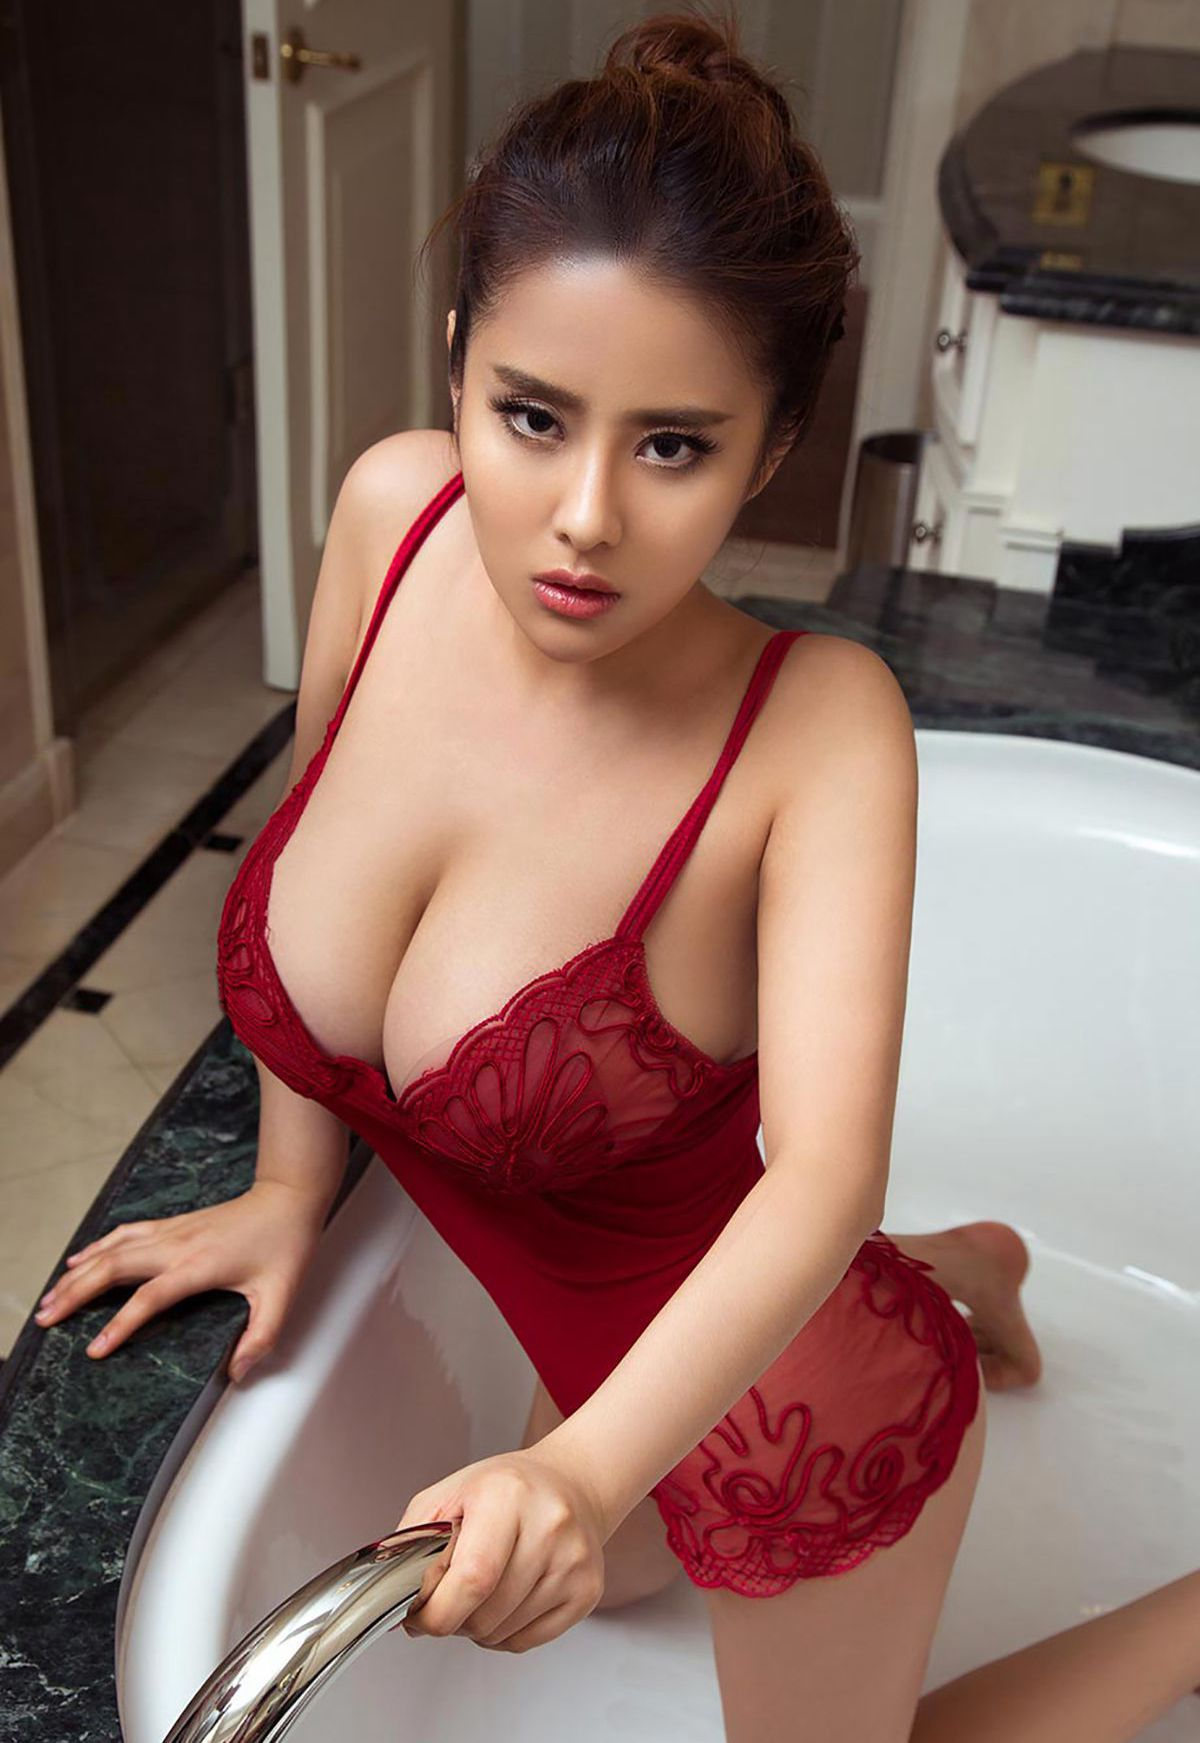 Philippine new escort in mumbai, filipino escort in mumbai